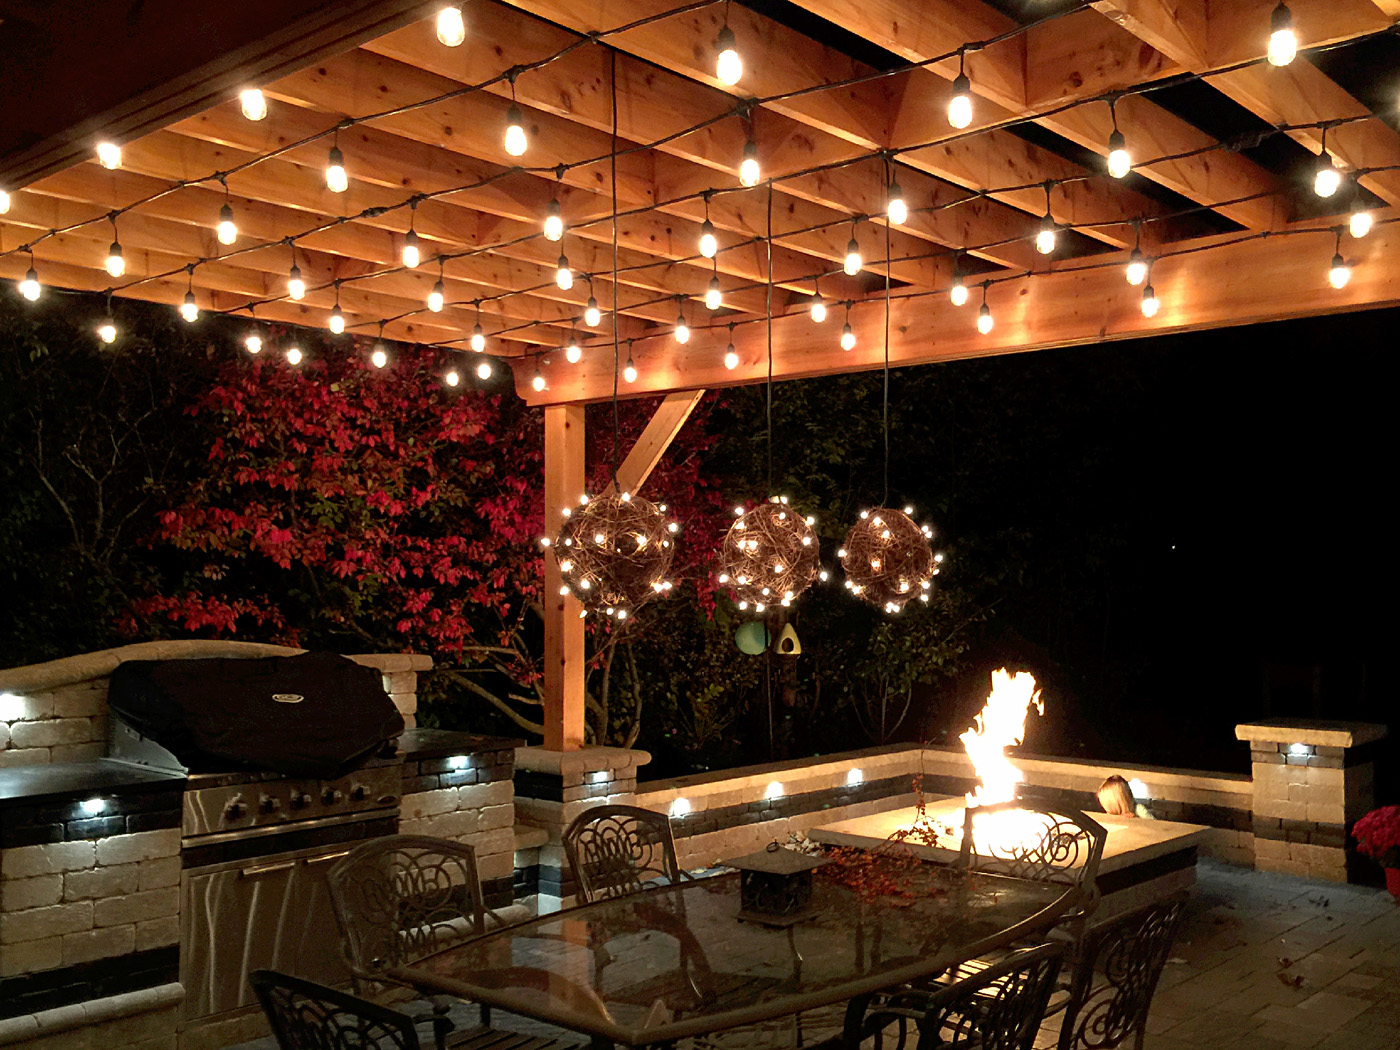 Greenville Outdoor Kitchen Lighting Is As Easy As One Two Three